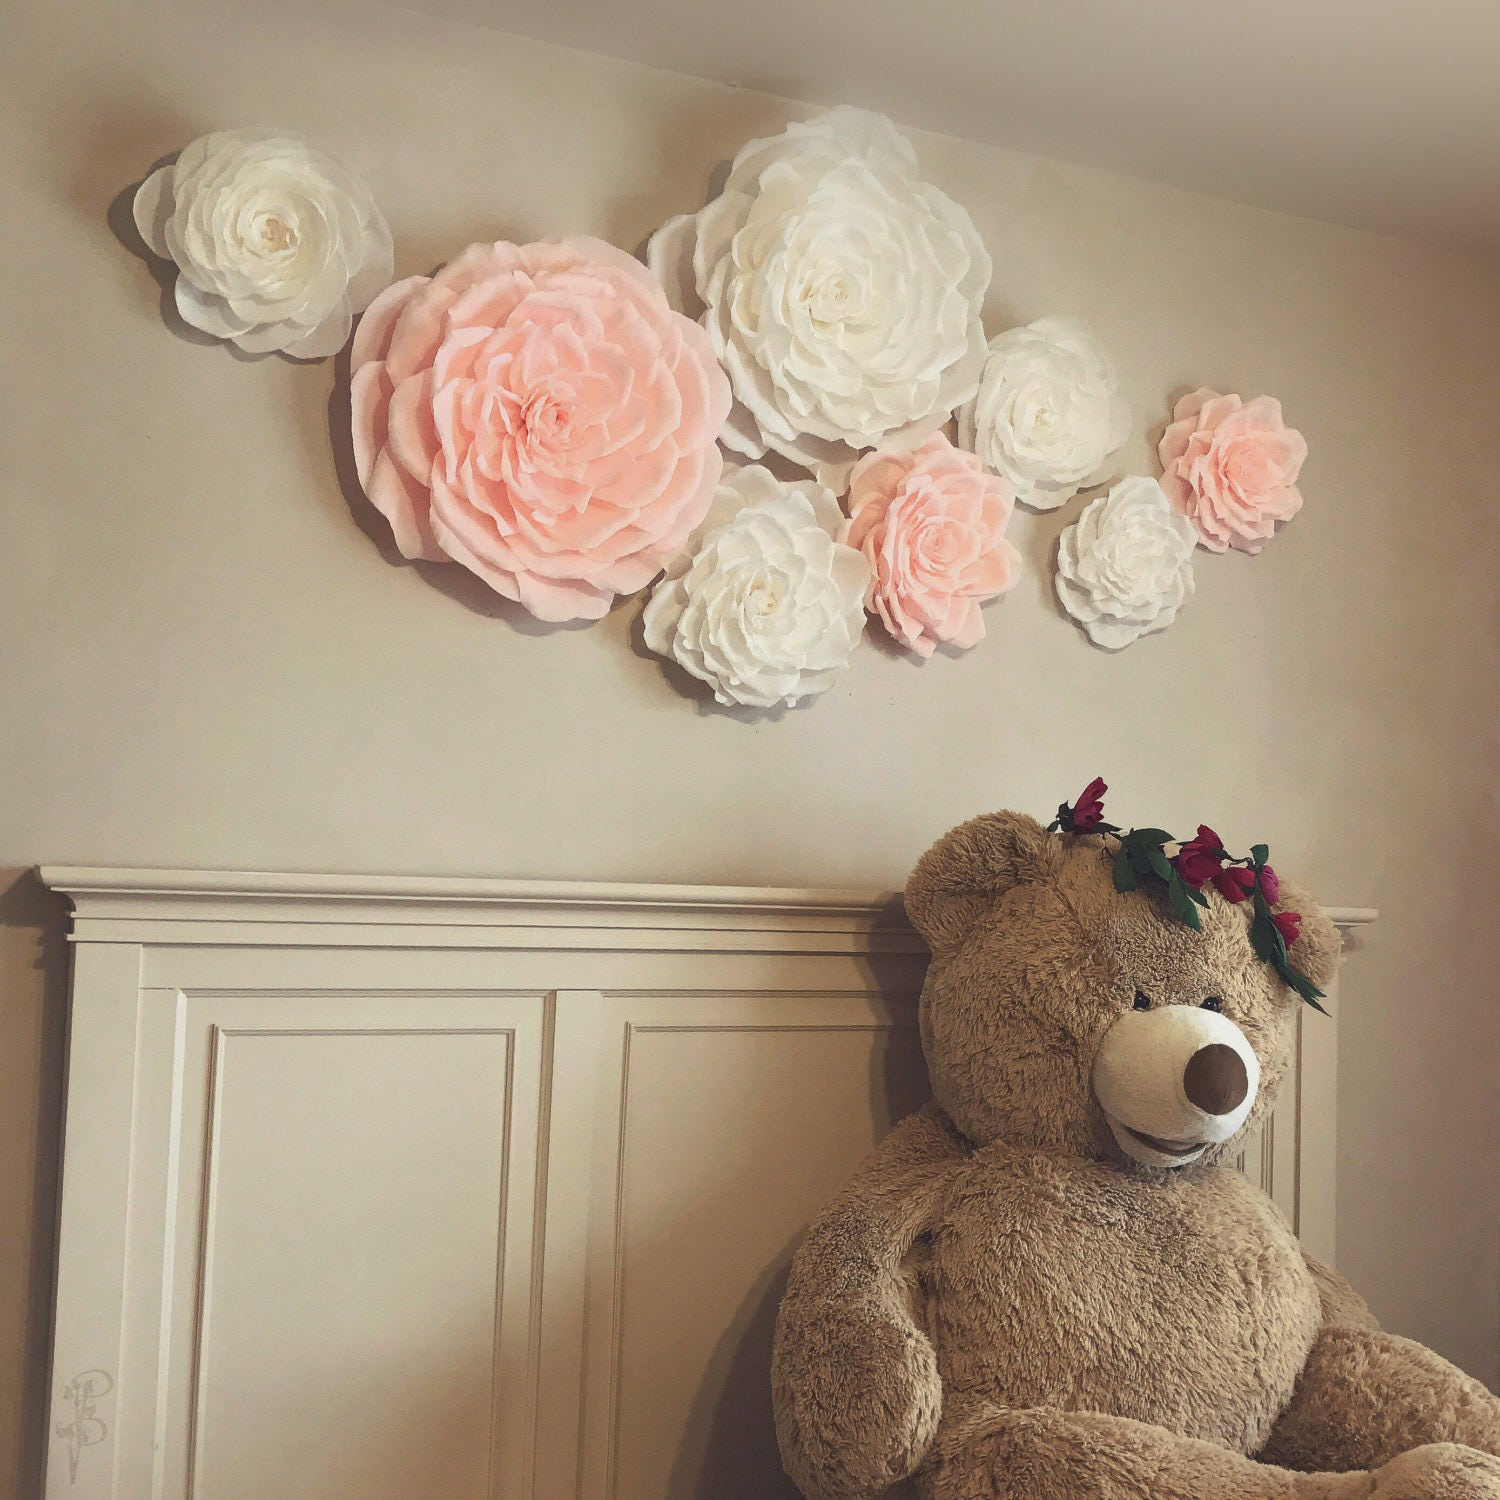 Baby Nursery Decor Design A Nursery That Will Make Your: Baby Nursery Paper Flower Wall Set Of 8 Handmade Crepe Paper